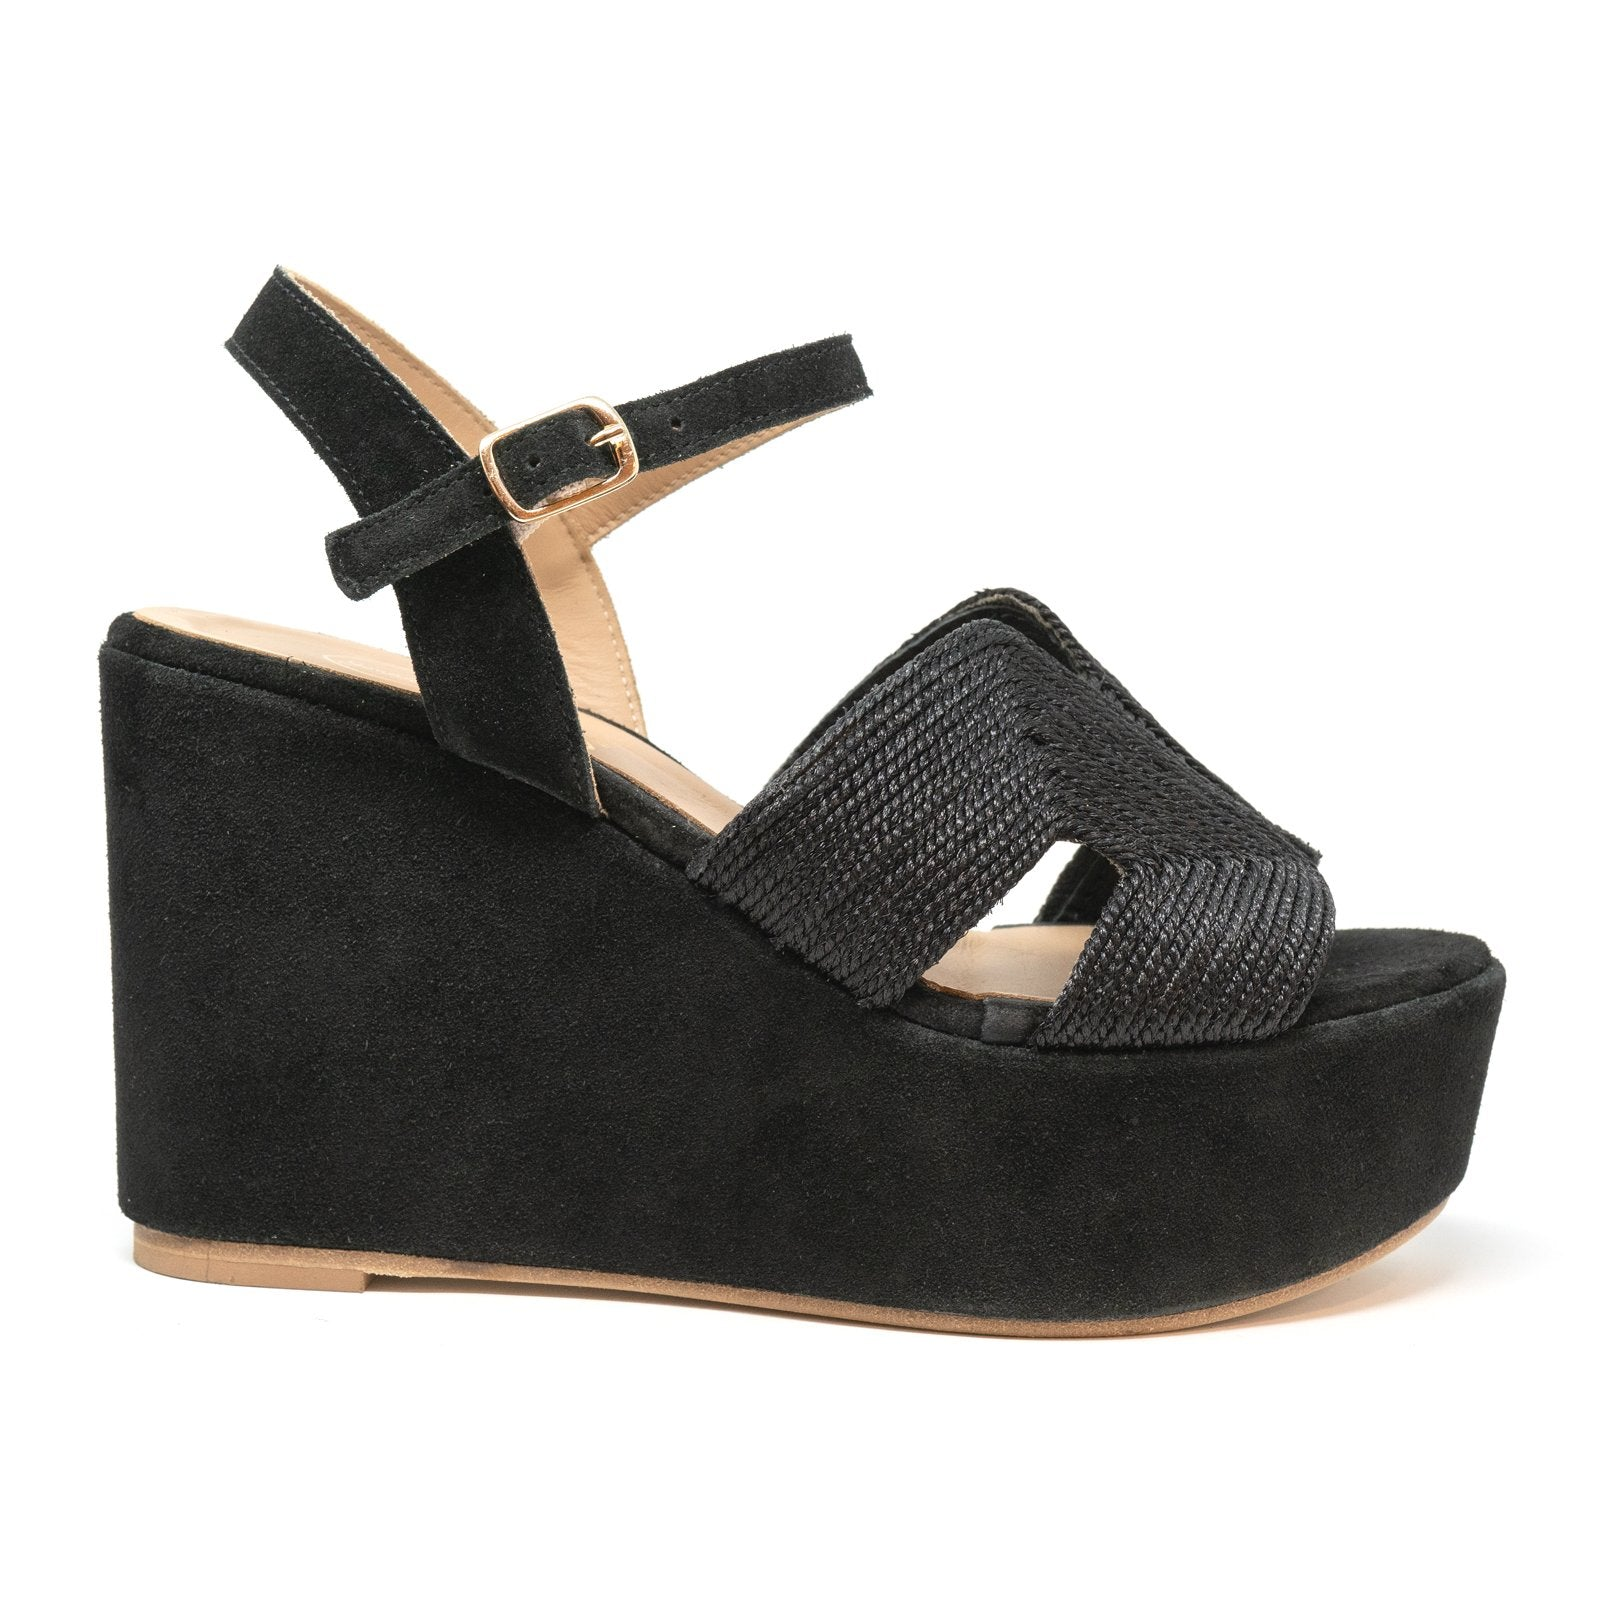 Women Suede Wedge Sandals in Black - Jennifer Tattanelli